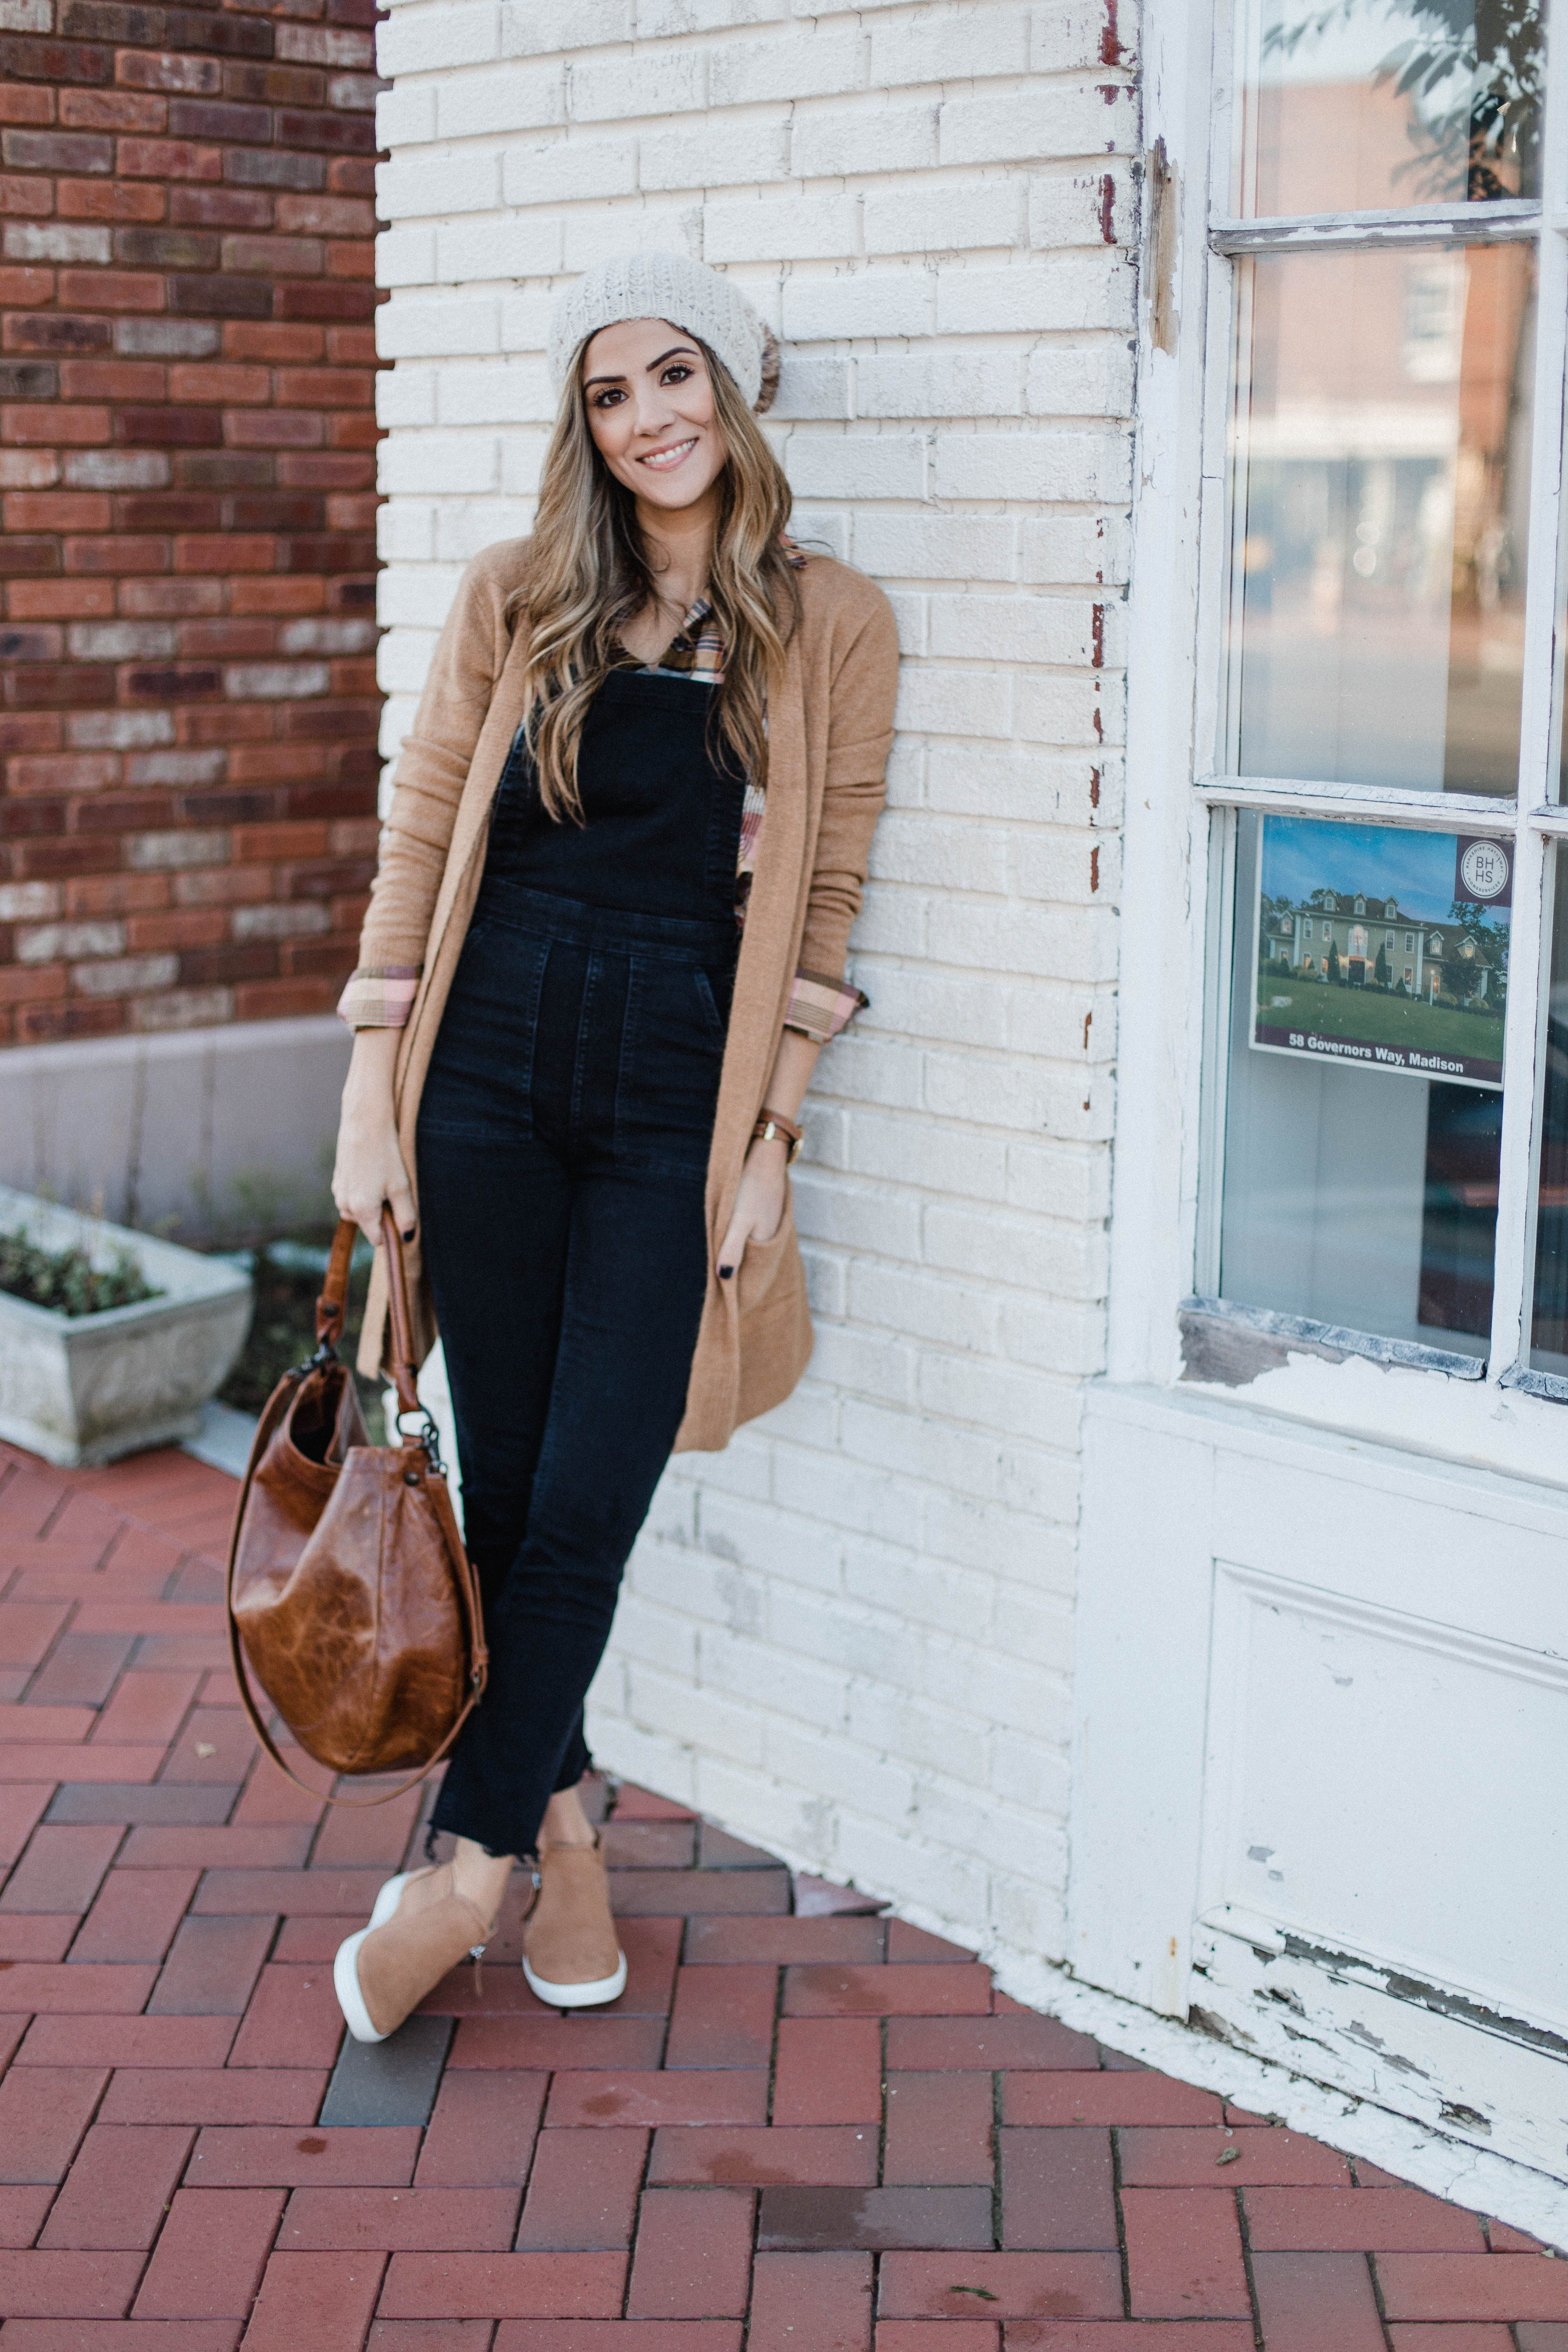 Best Casual Sneakers for Comfort - Lauren McBride 1